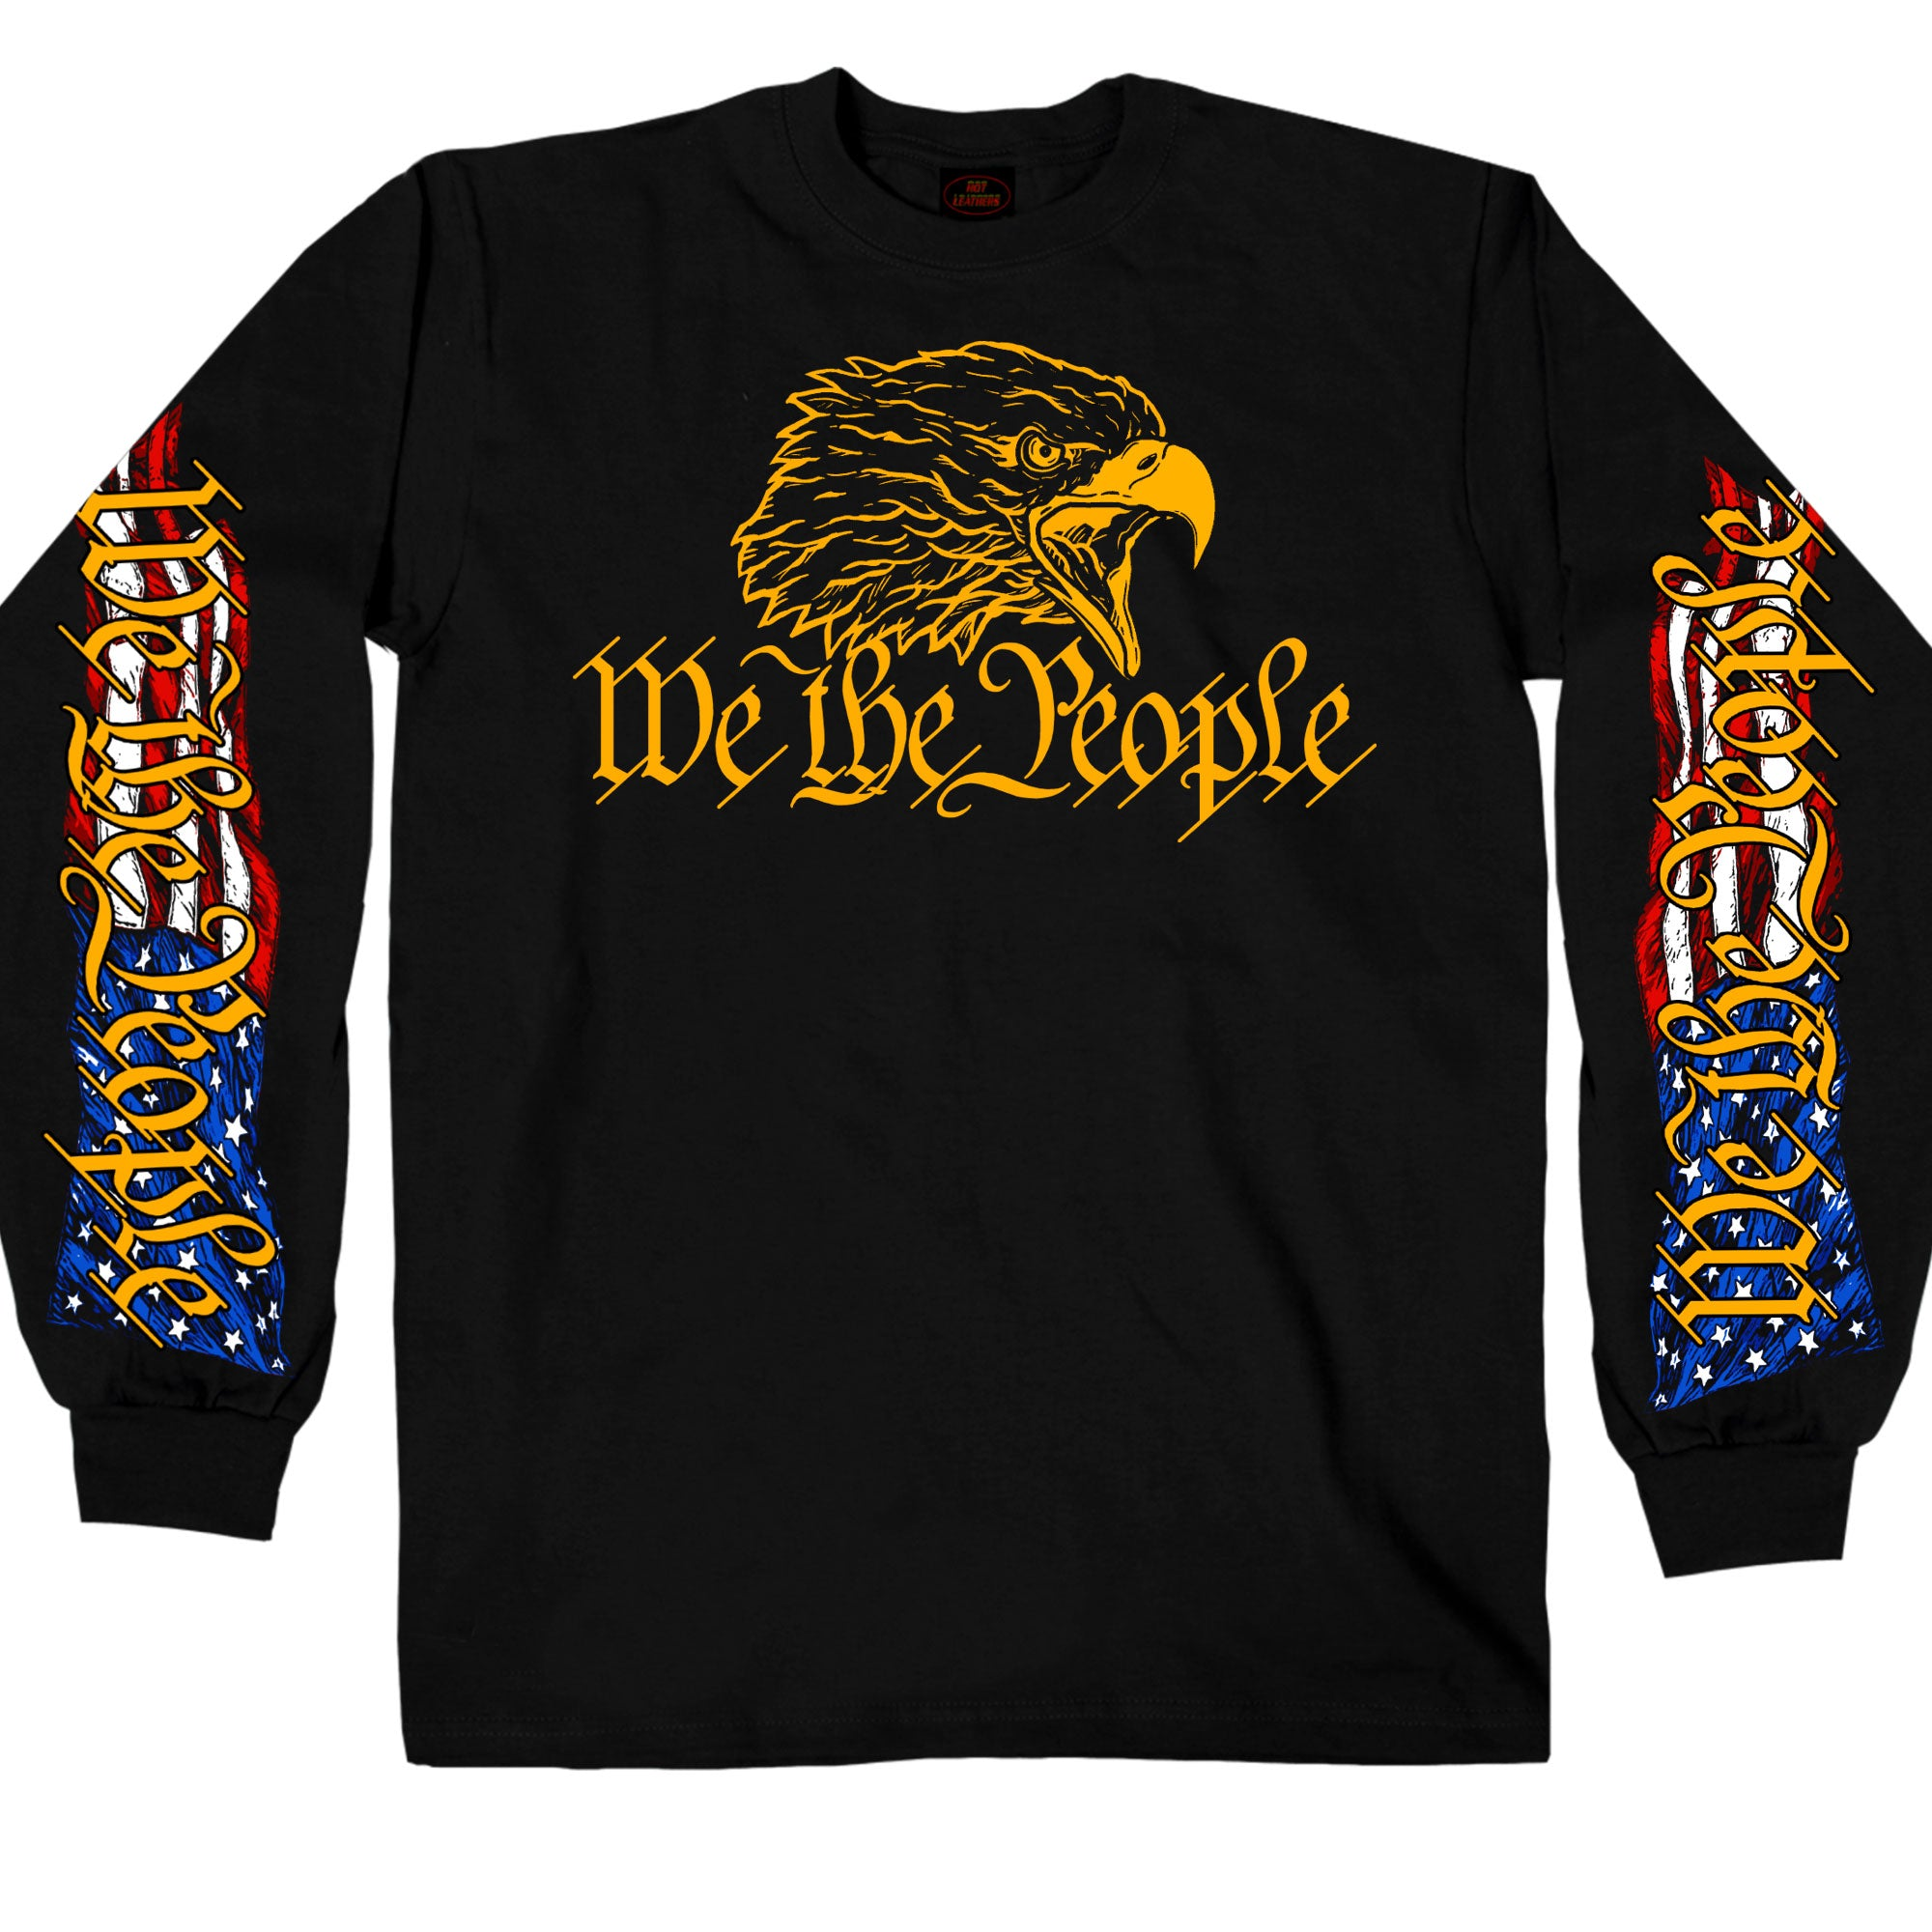 Hot Leathers Long Sleeve We The People Eagle